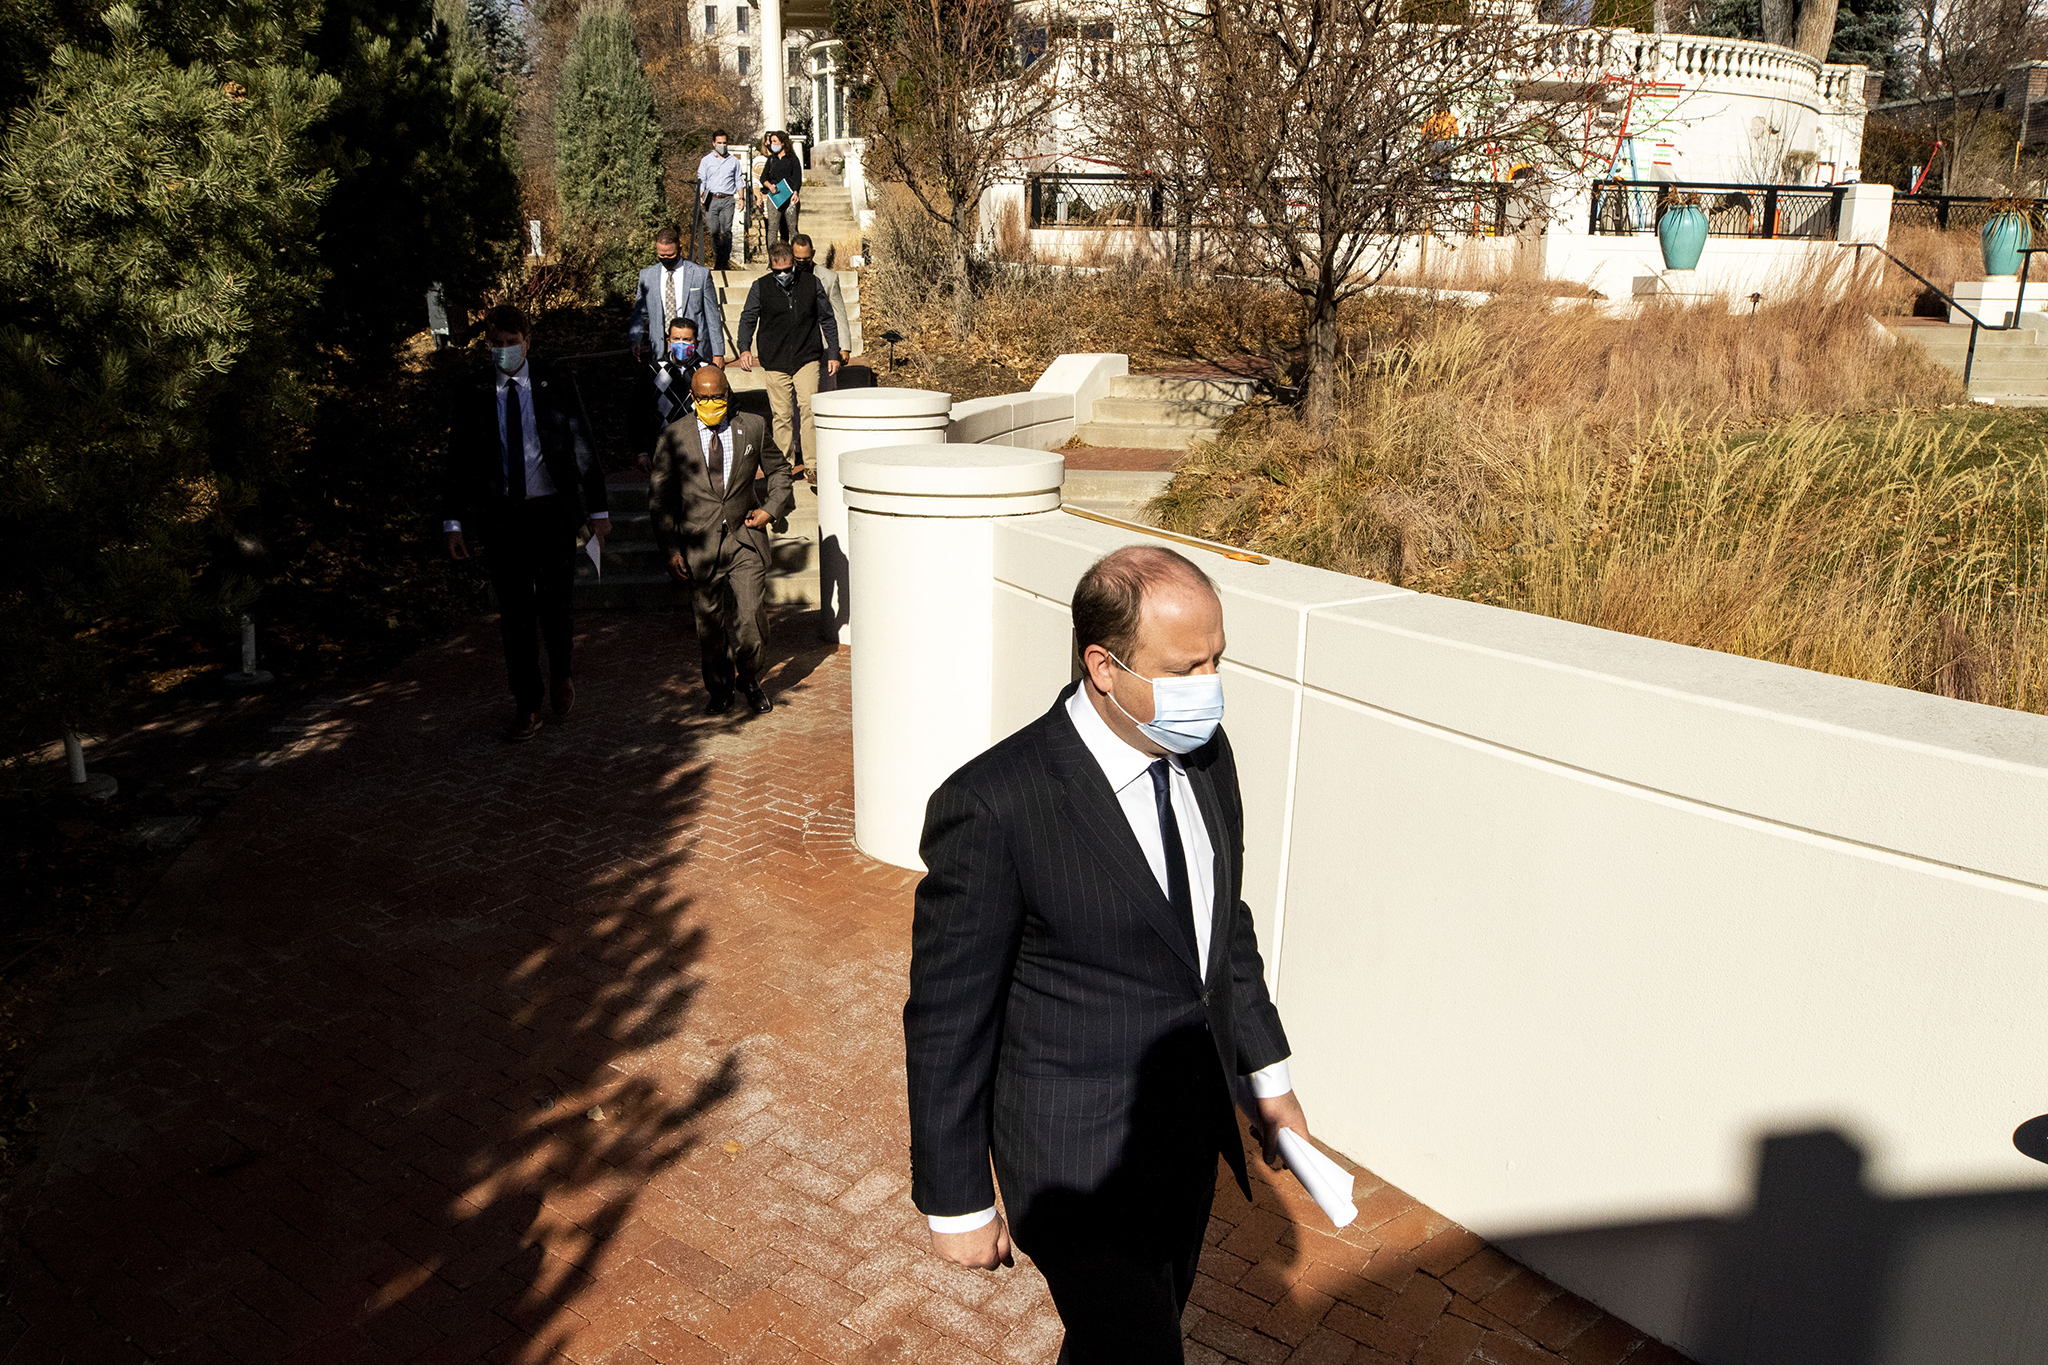 Gov. Jared Polis holds a press conference on COVID-19 at the Governor's Mansion in Capitol Hill. Nov. 17, 2020.